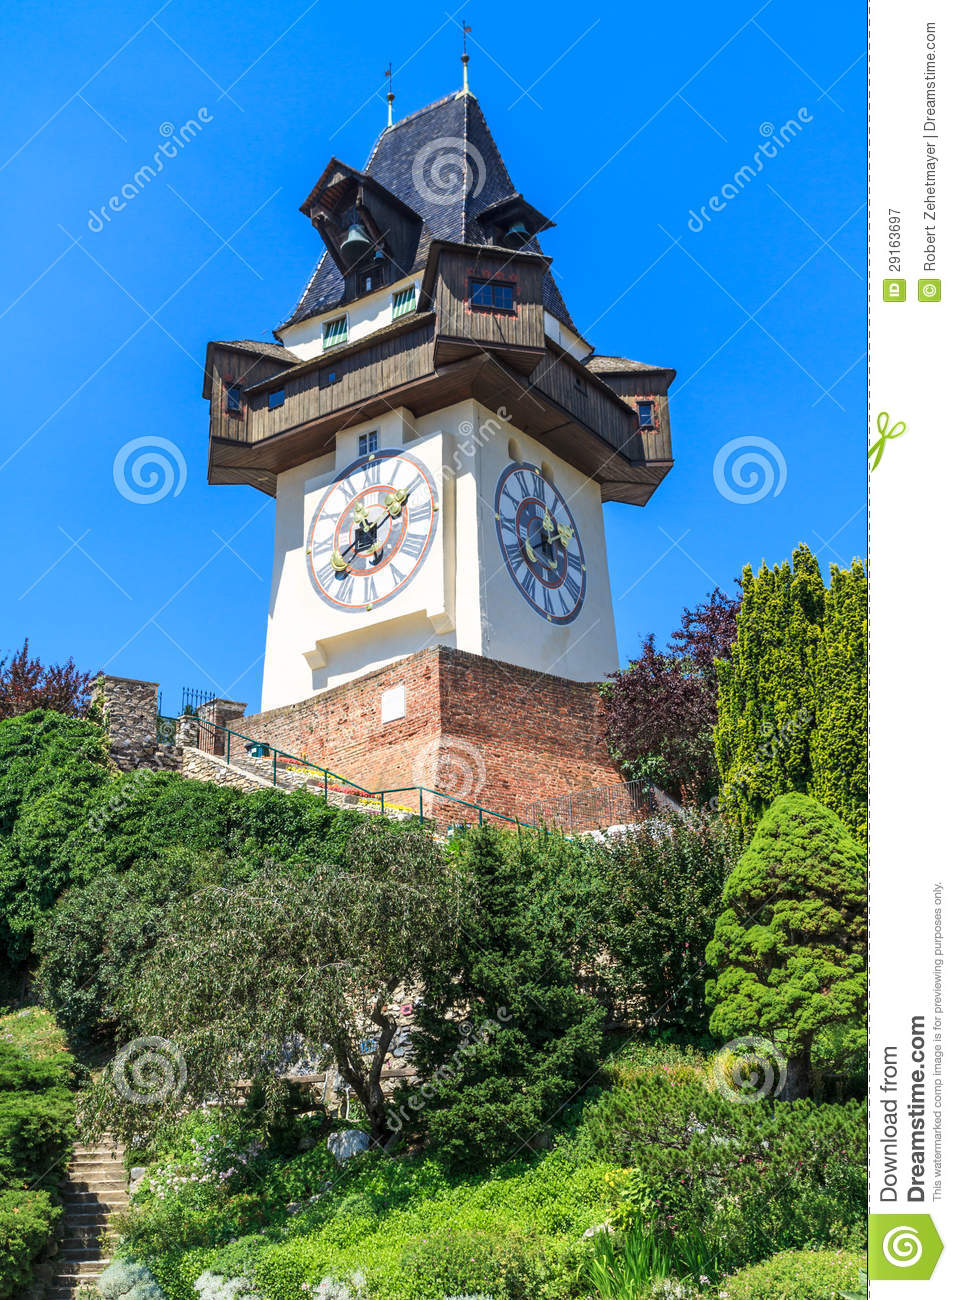 Famous Clock Tower Uhrturm In Graz Austria Royalty Free